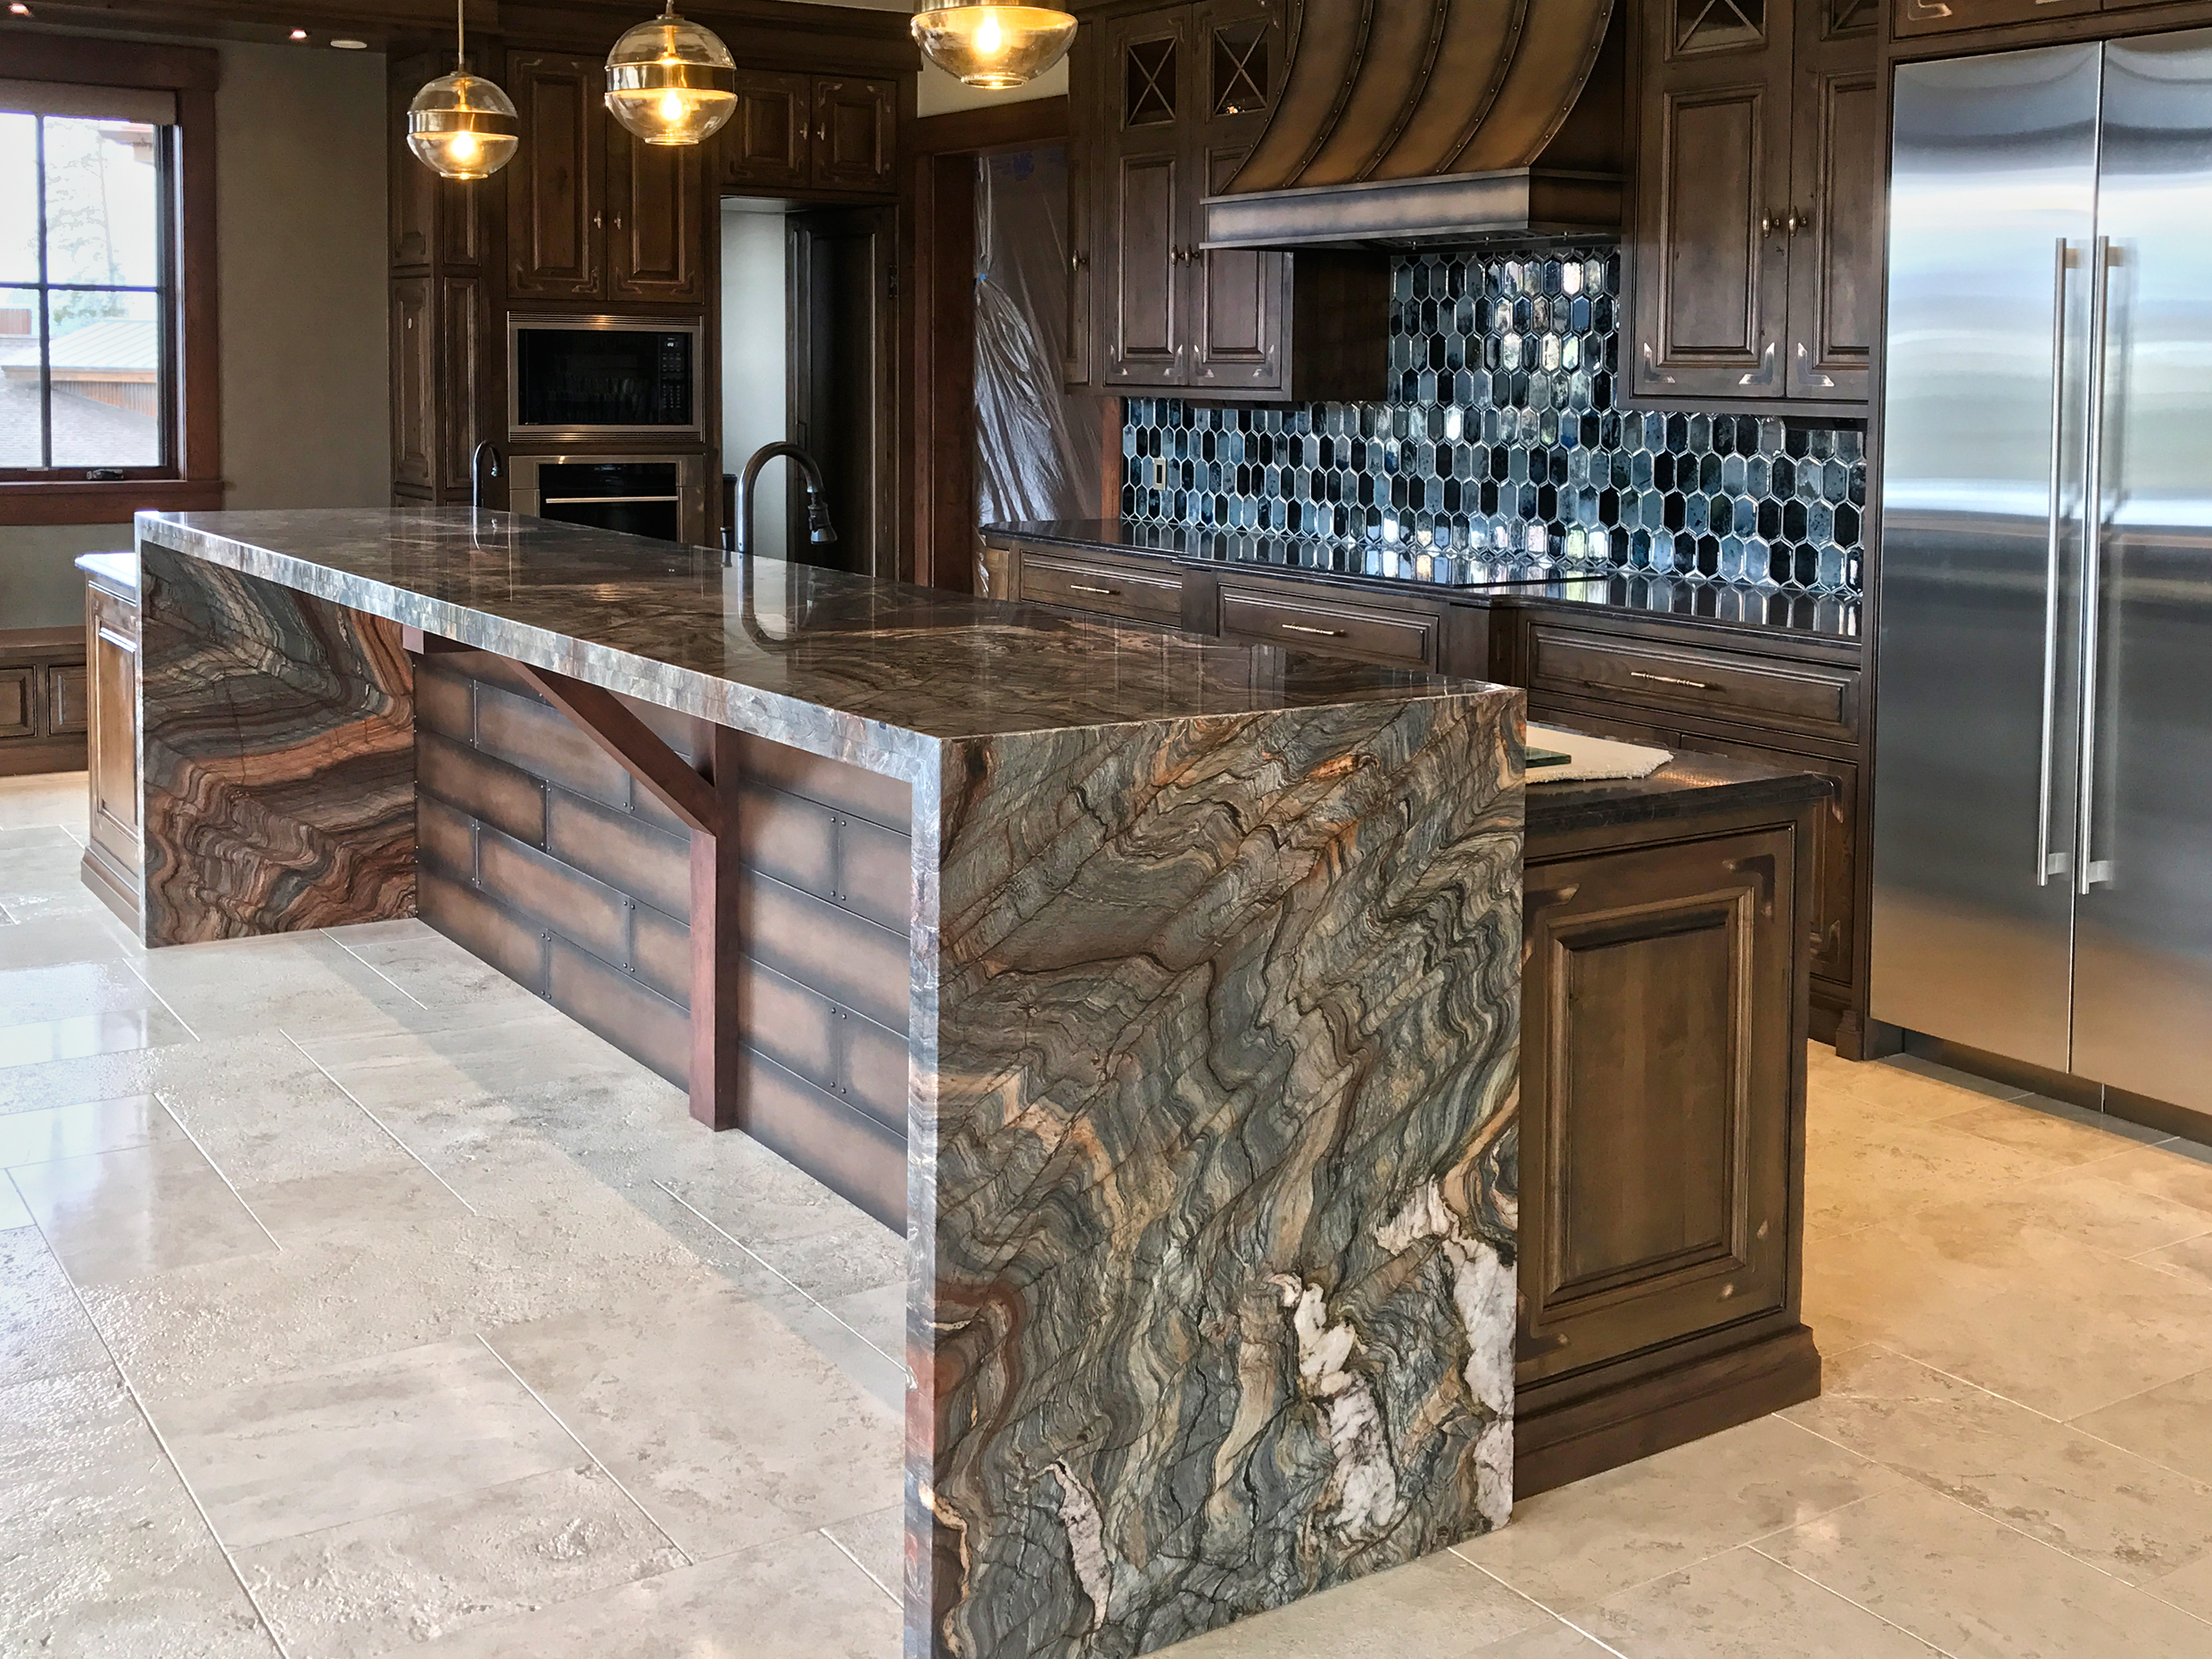 YK Stone Center | Custom Counter Tops Denver | Denver Granite & Marble